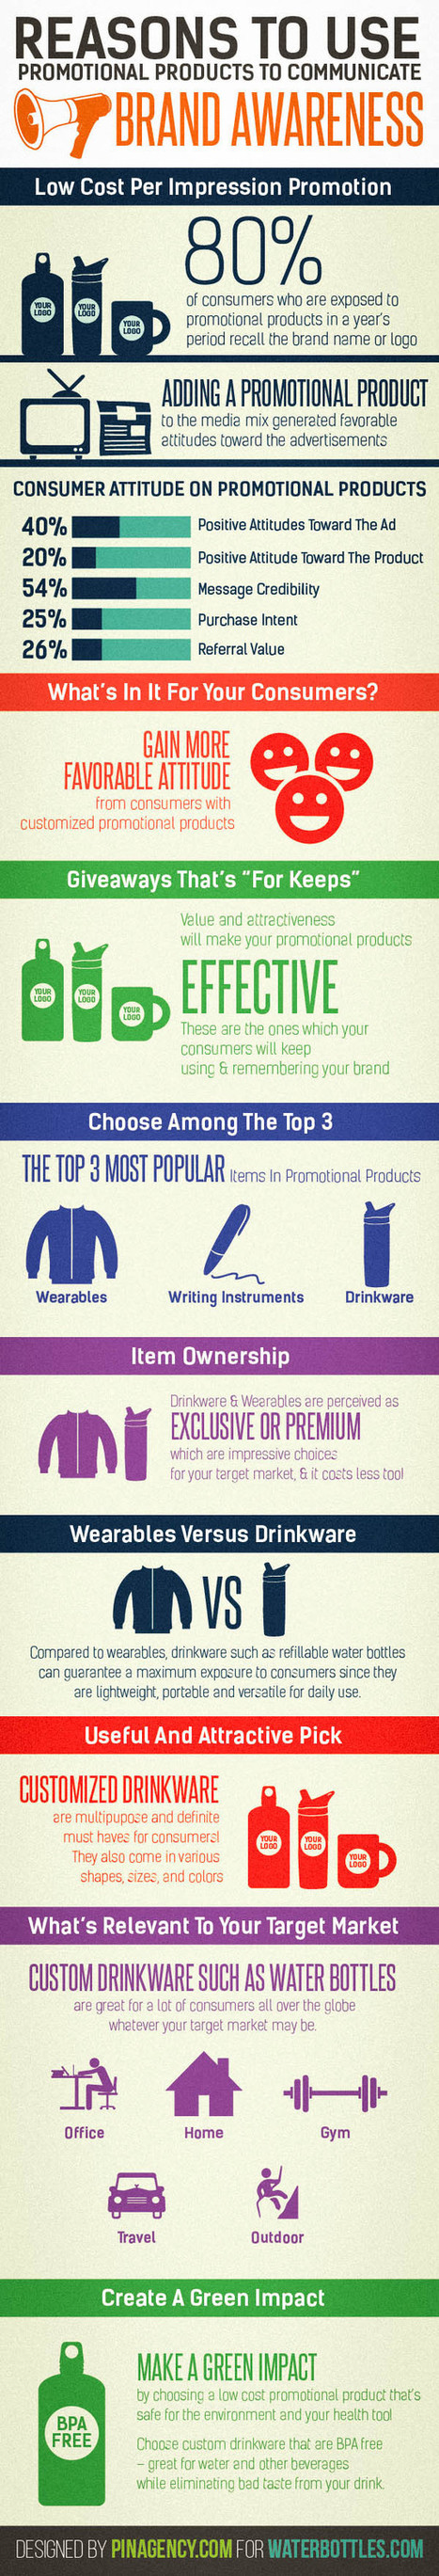 Need Brand Awareness? Use Promotional Products Strategy! | All Infographics | Scoop.it